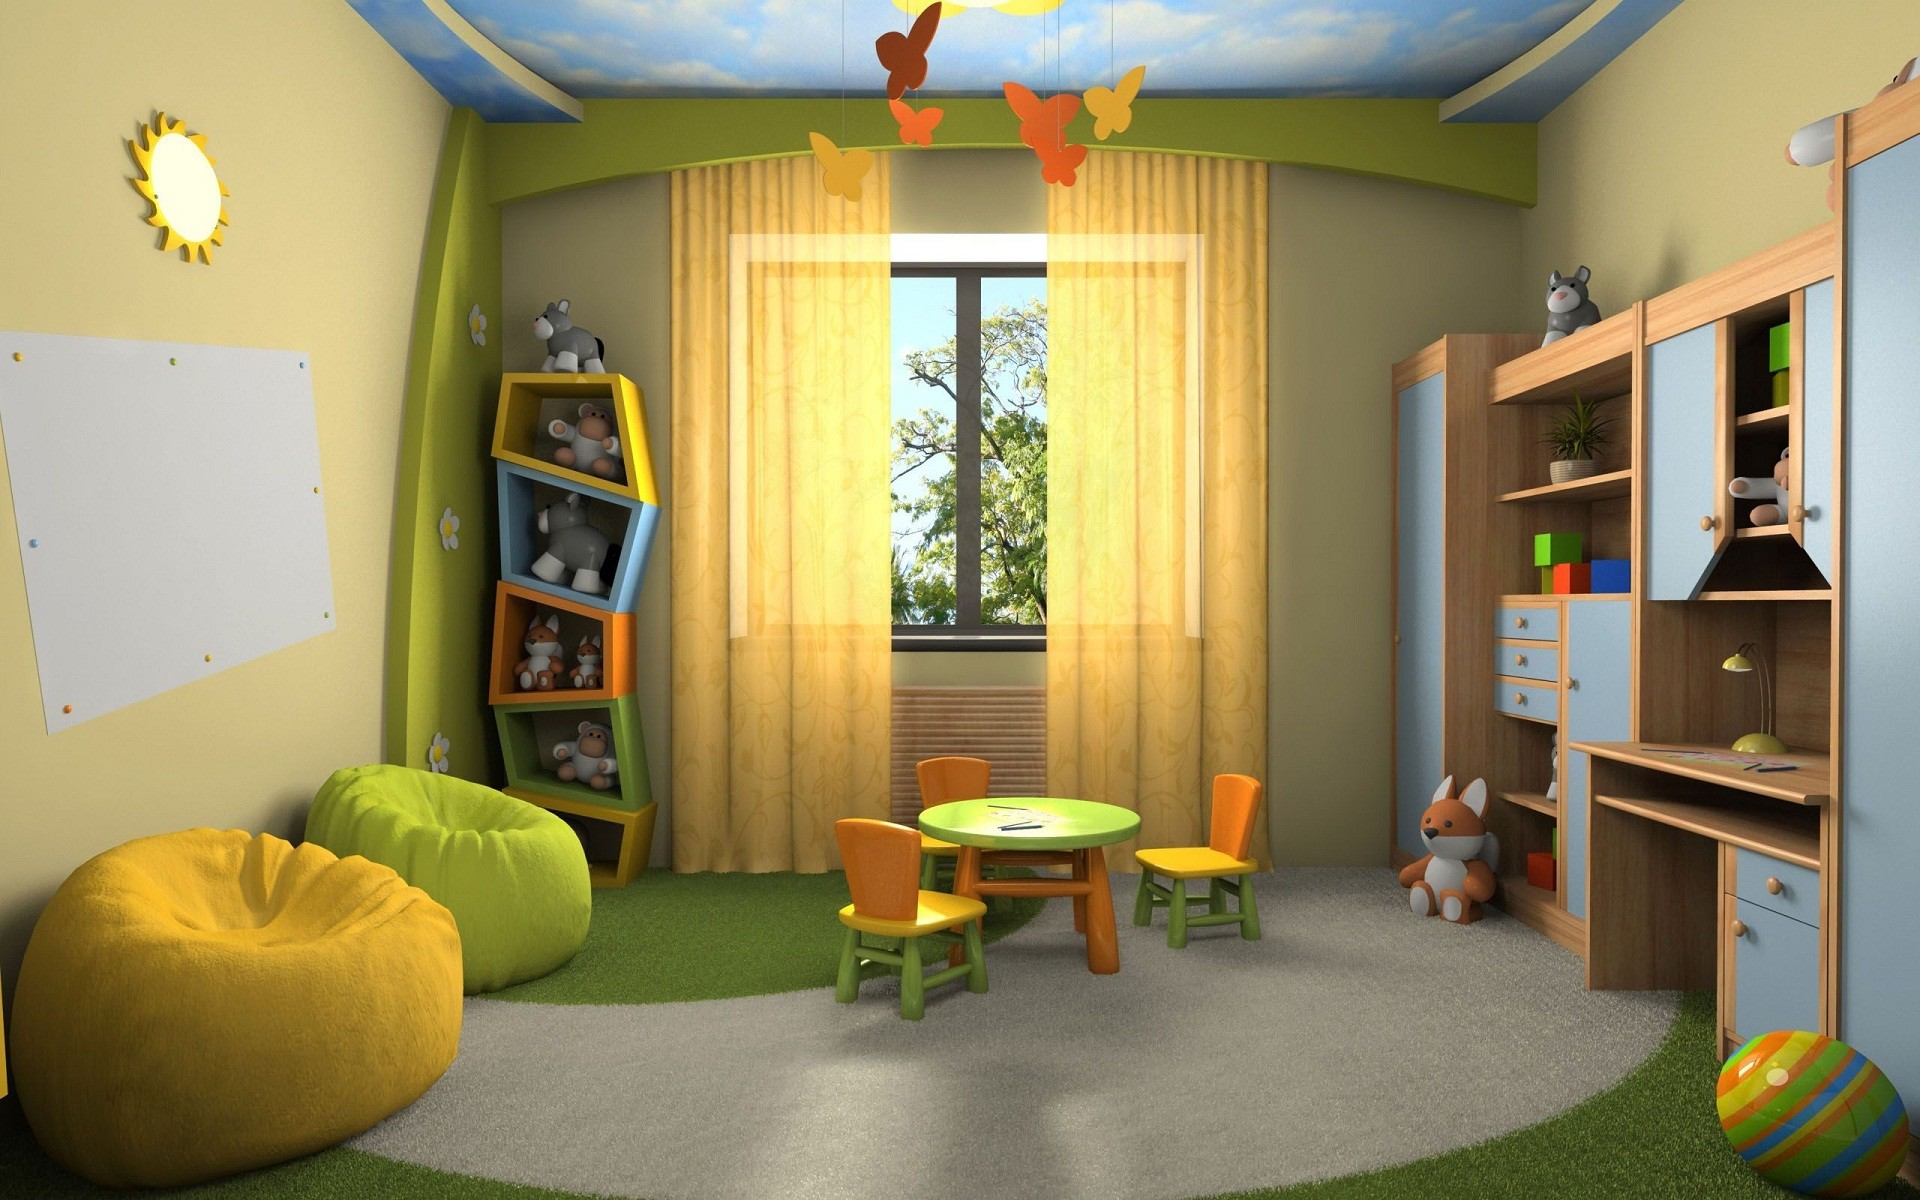 Boys room wallpaper 34 images for Kid room wallpaper